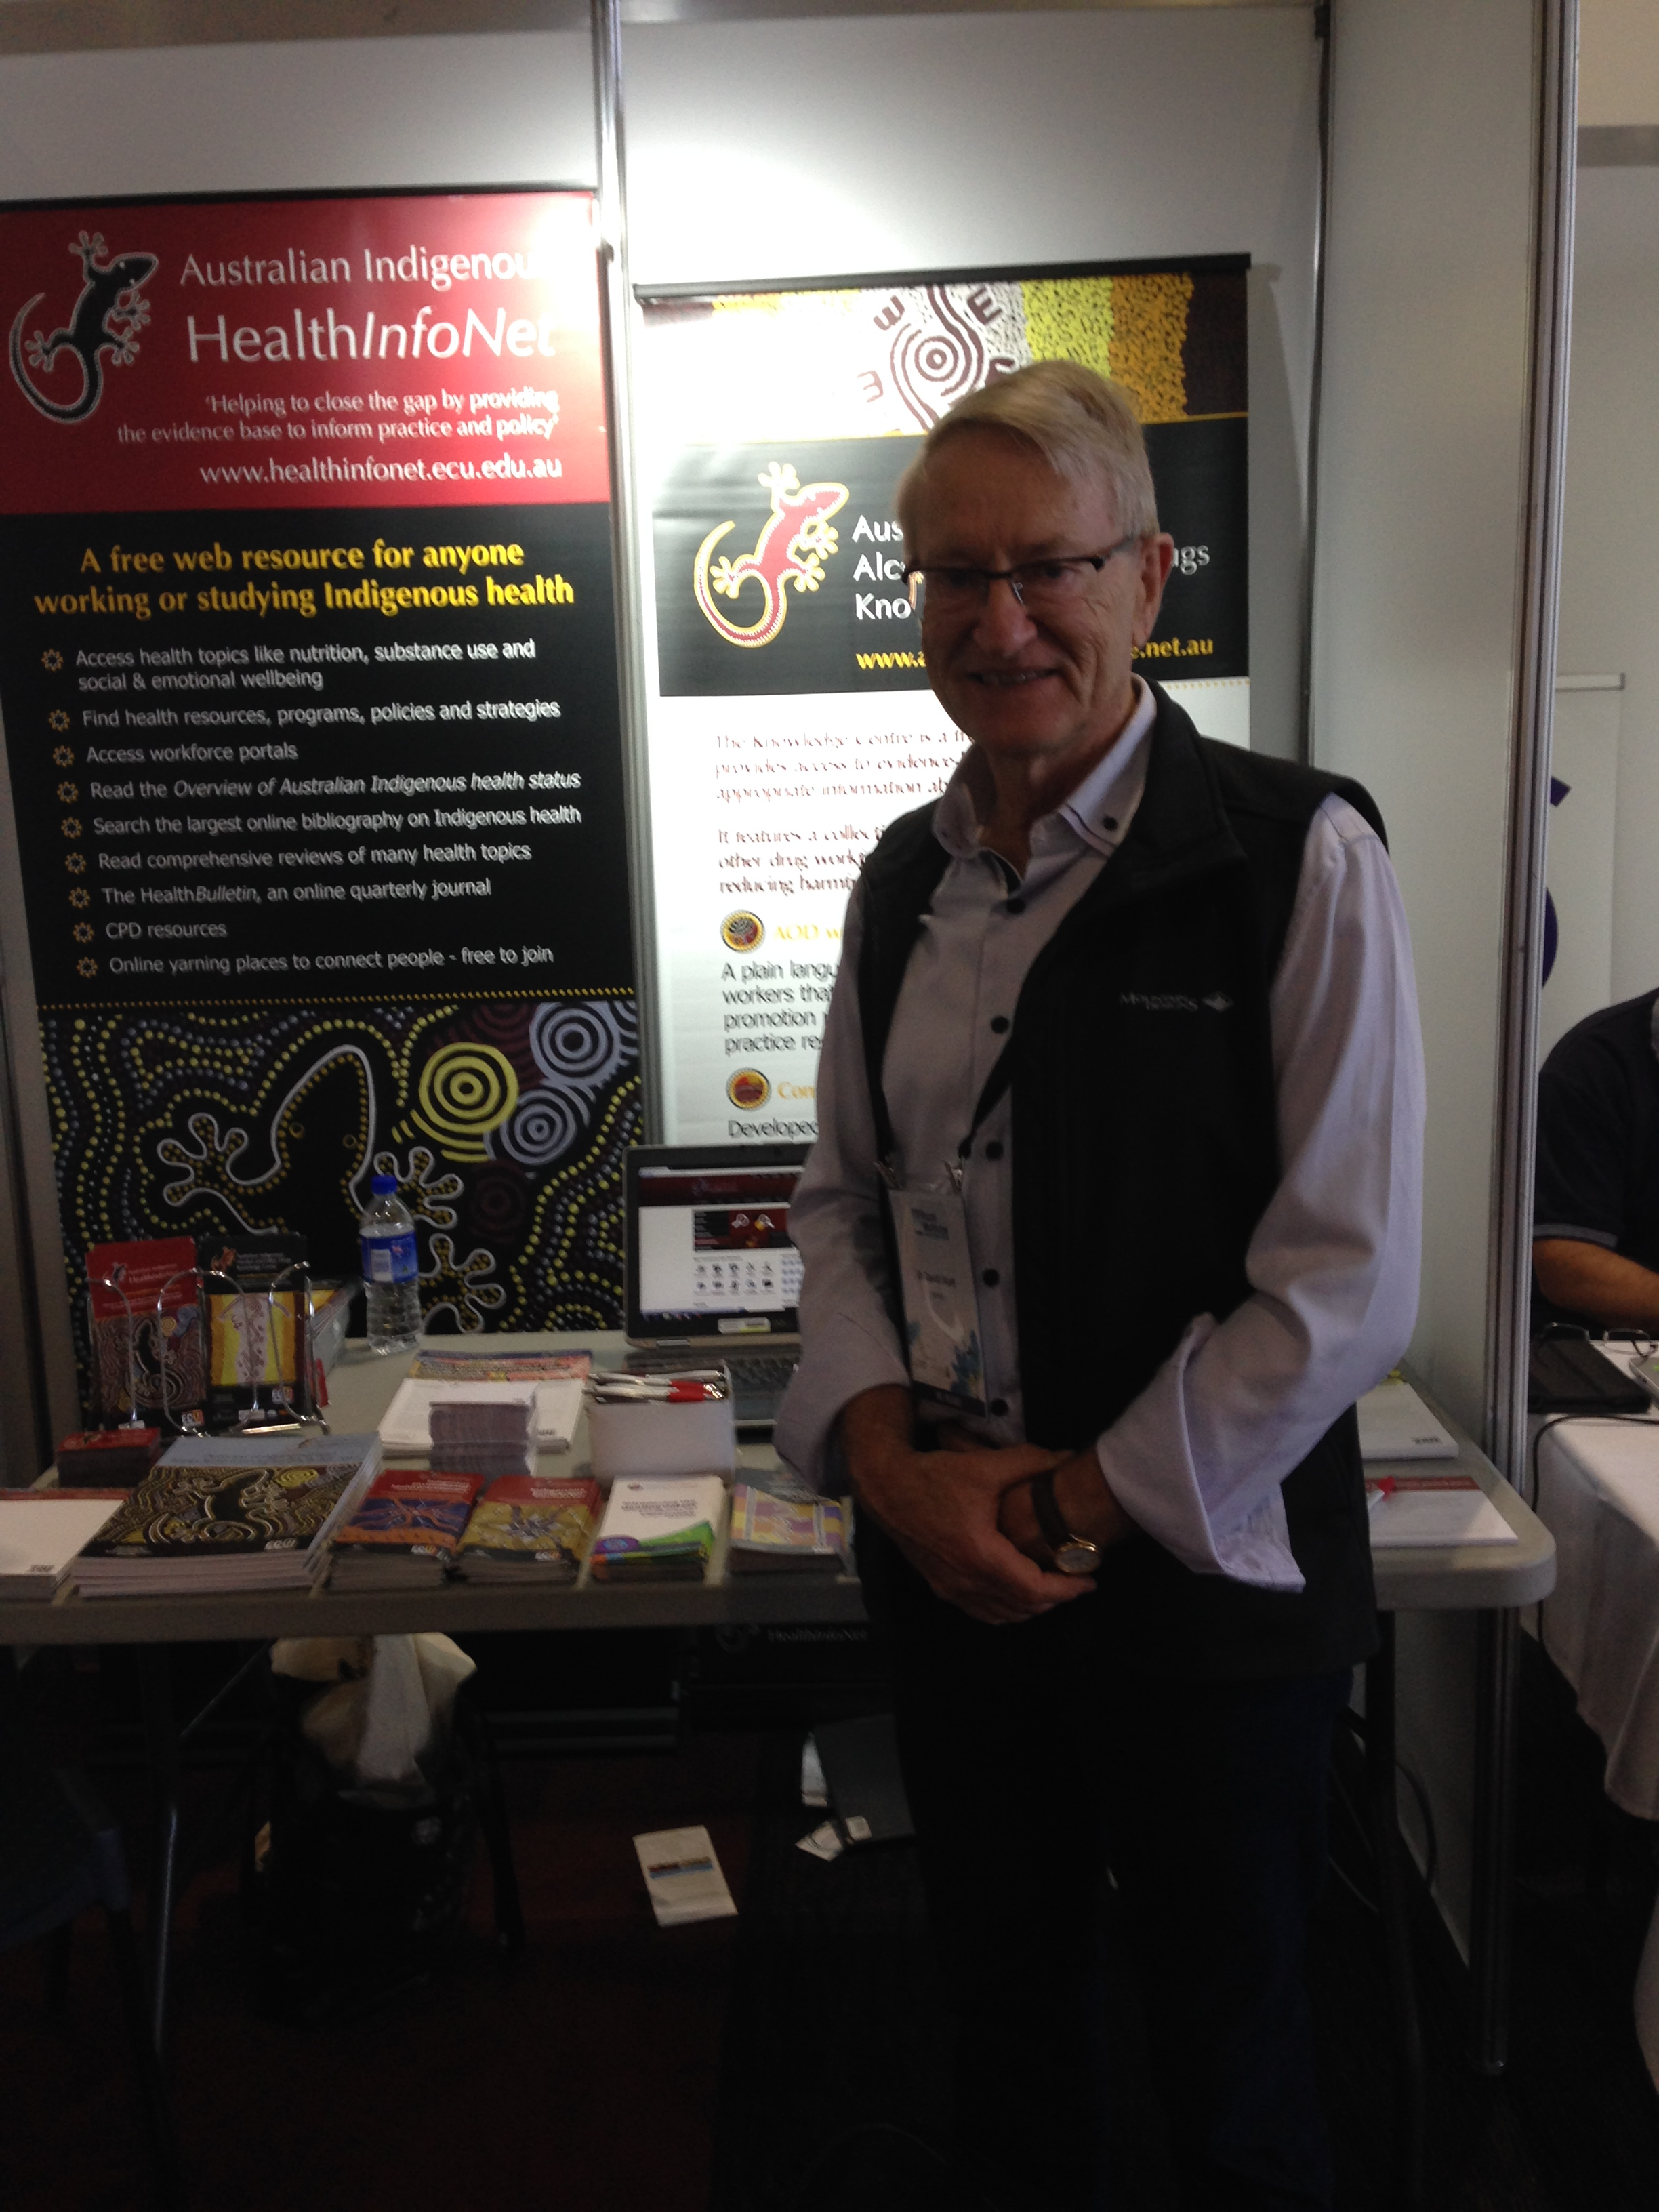 Rural General Practitioner, Dr David J Hunt, at the HealthInfoNet stand